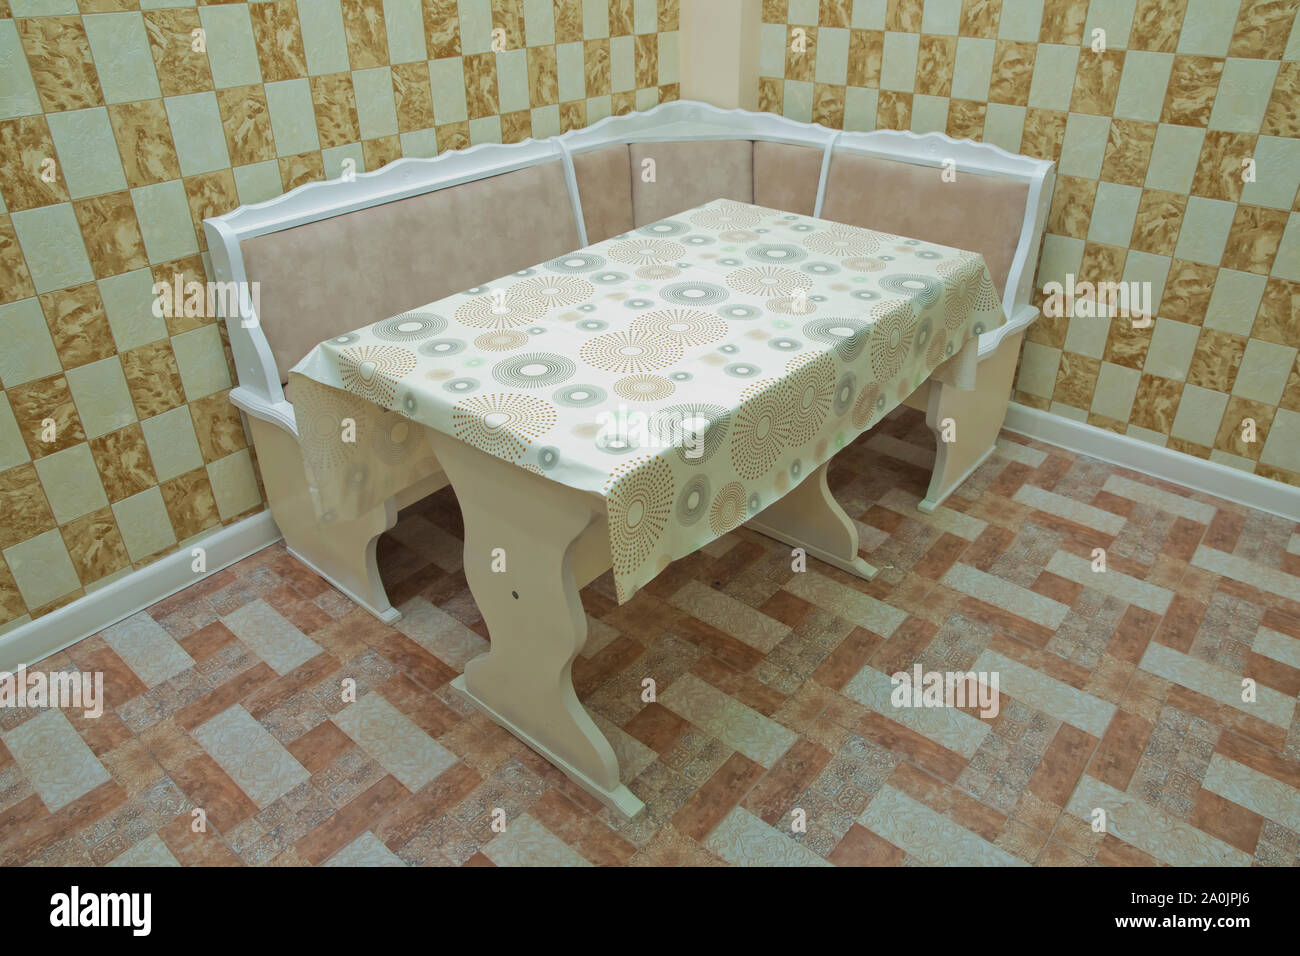 Picture of: Kitchen Corner Sofa And Table In The Interior Design Of Orange White Kitchen Soft Corner With A Table Stock Photo Alamy